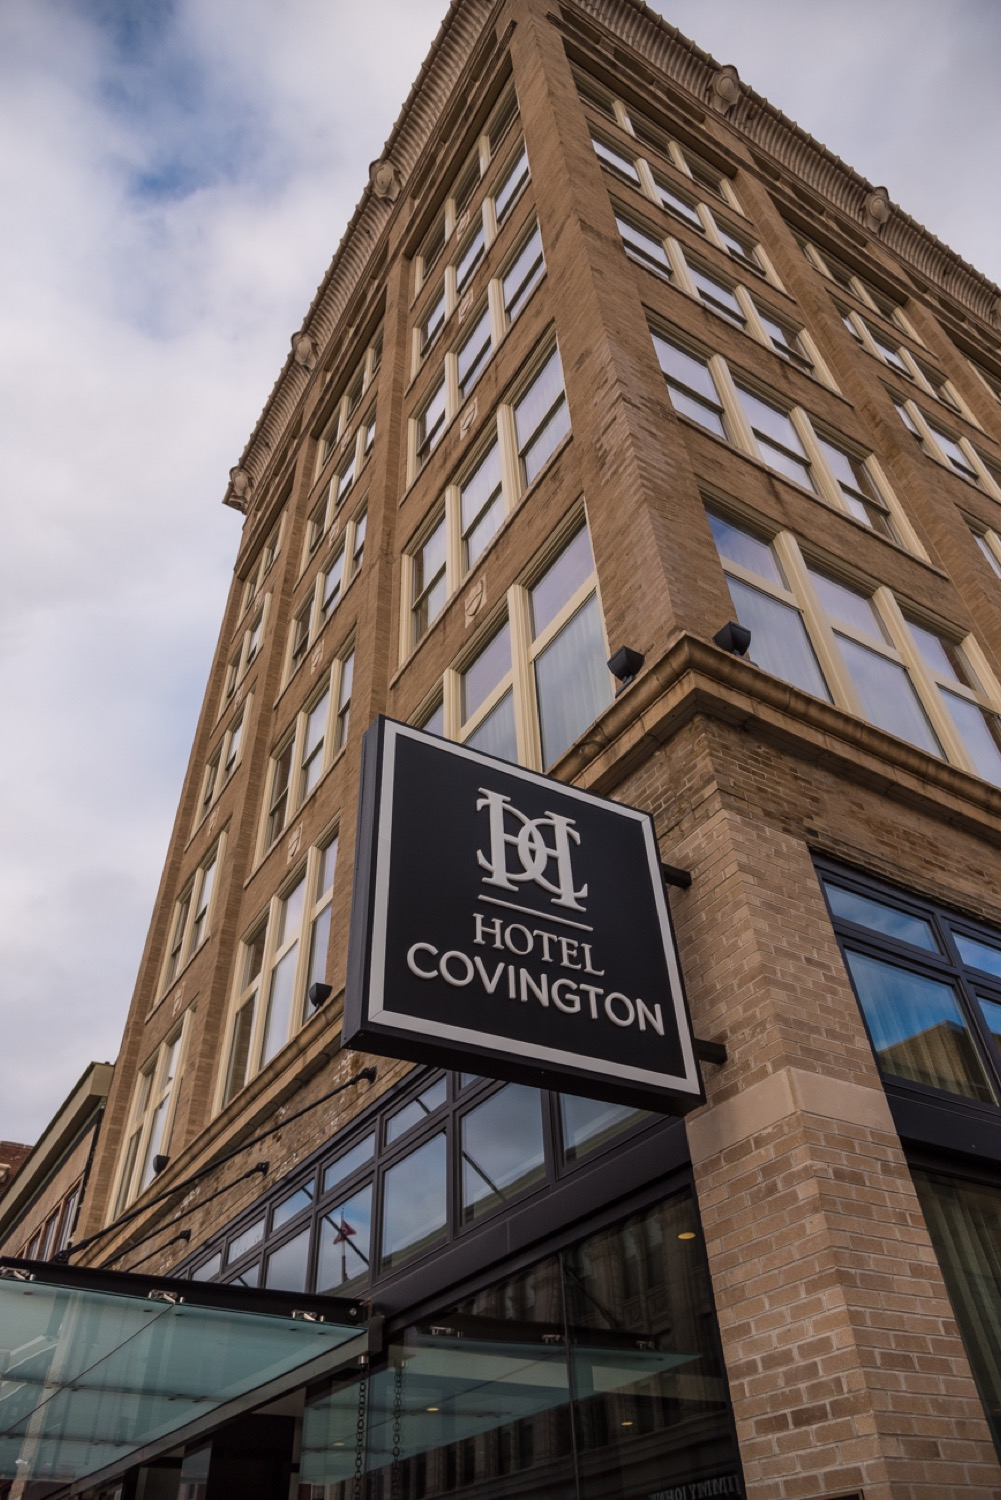 Hotel Covington: this new hotel is an absolutely impressive addition to the Madison Avenue revitalization. ADDRESS: 638 Madison Avenue / Image: Phil Armstrong, Cincinnati Refined // Published: 1.6.17